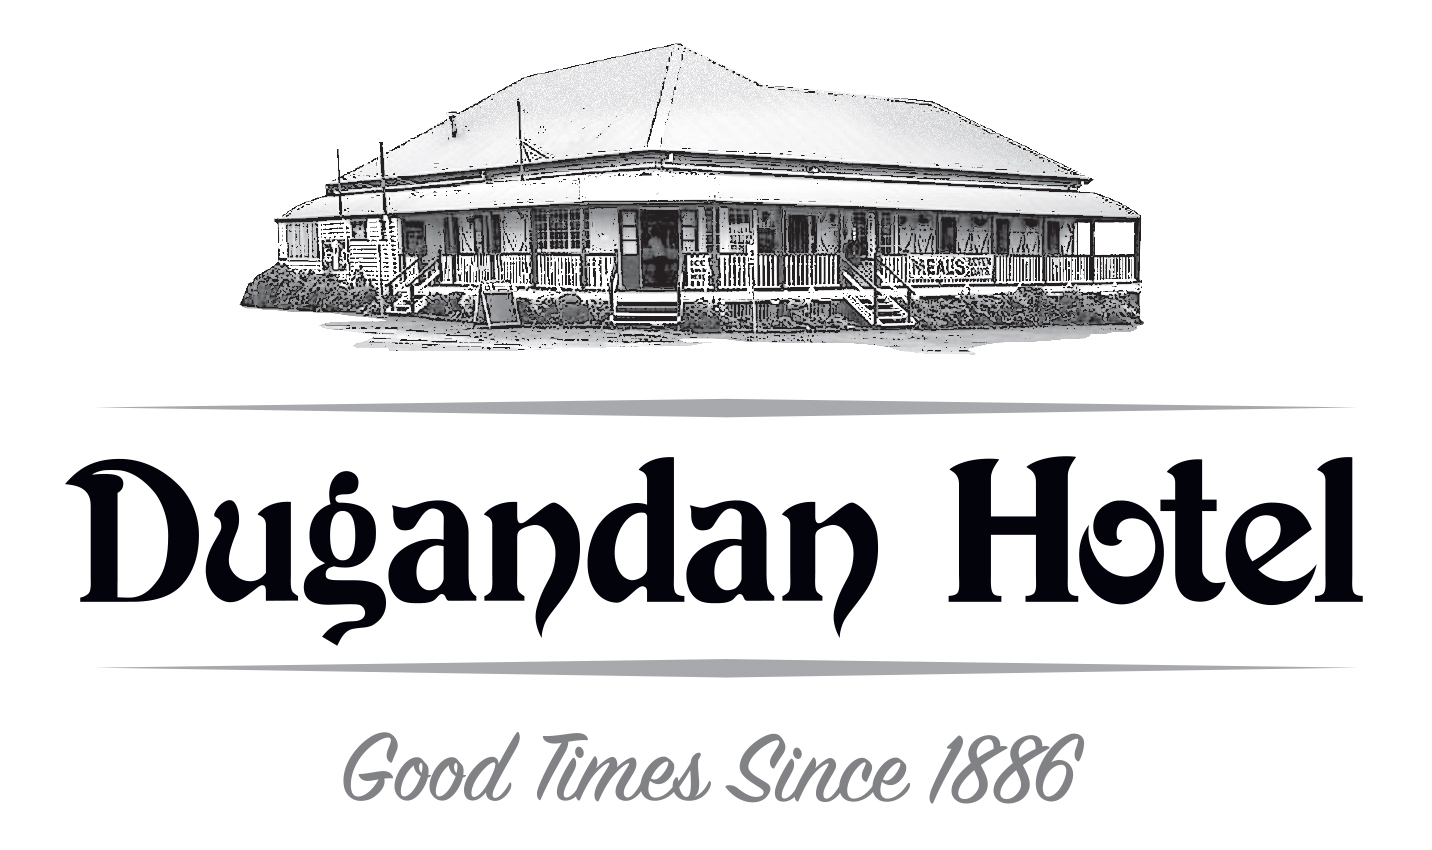 Dugandan Hotel - St Kilda Accommodation